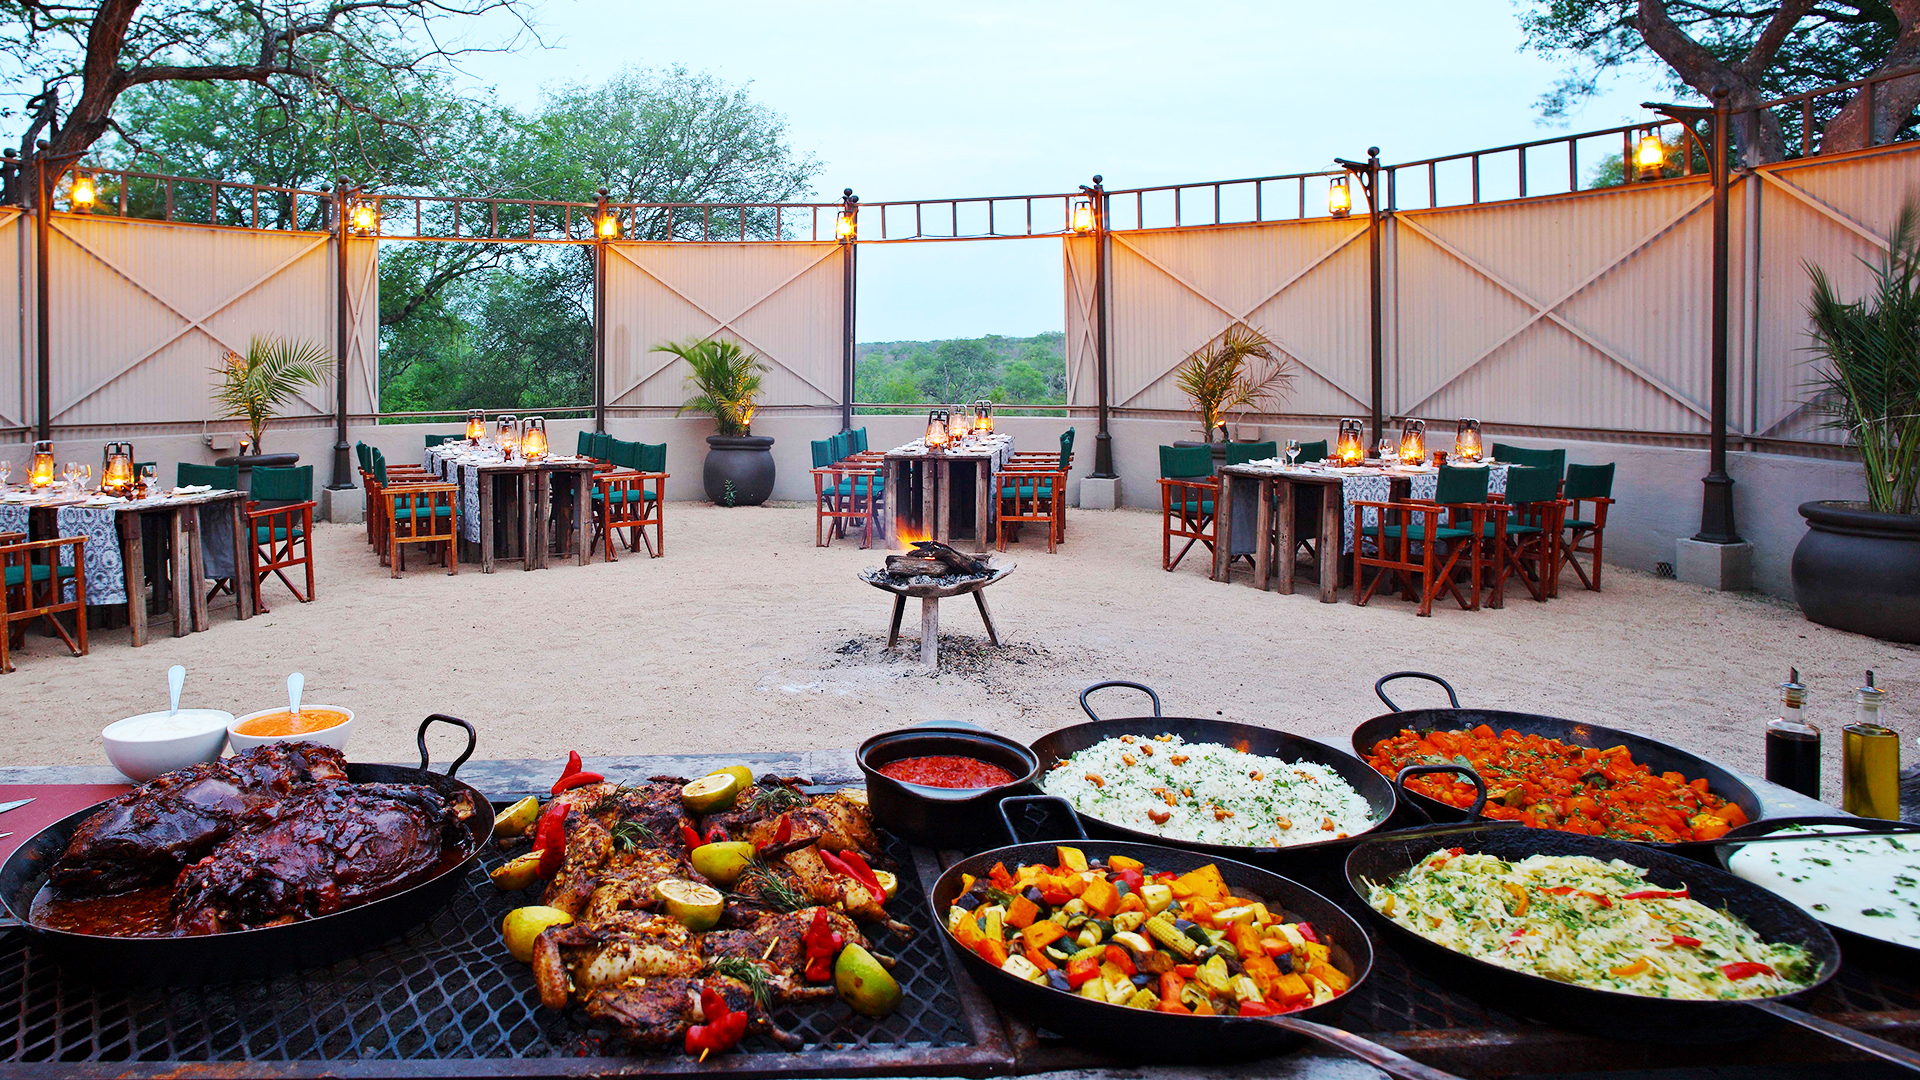 Weddings Around The World: African Wedding Food That Puts Ours To Shame!